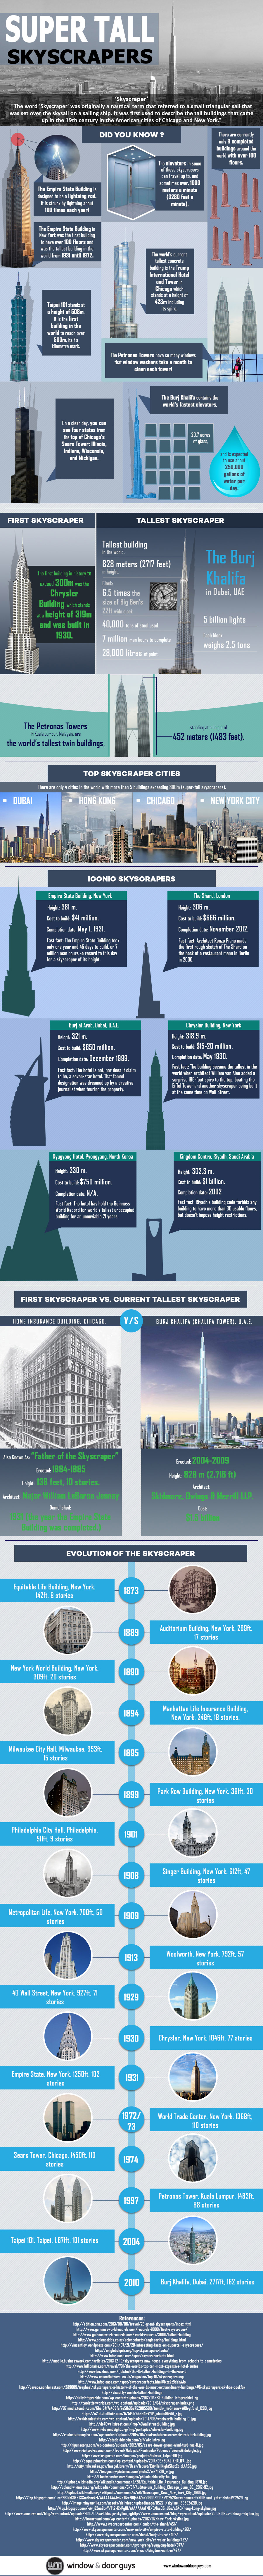 Tall_Skycrapers